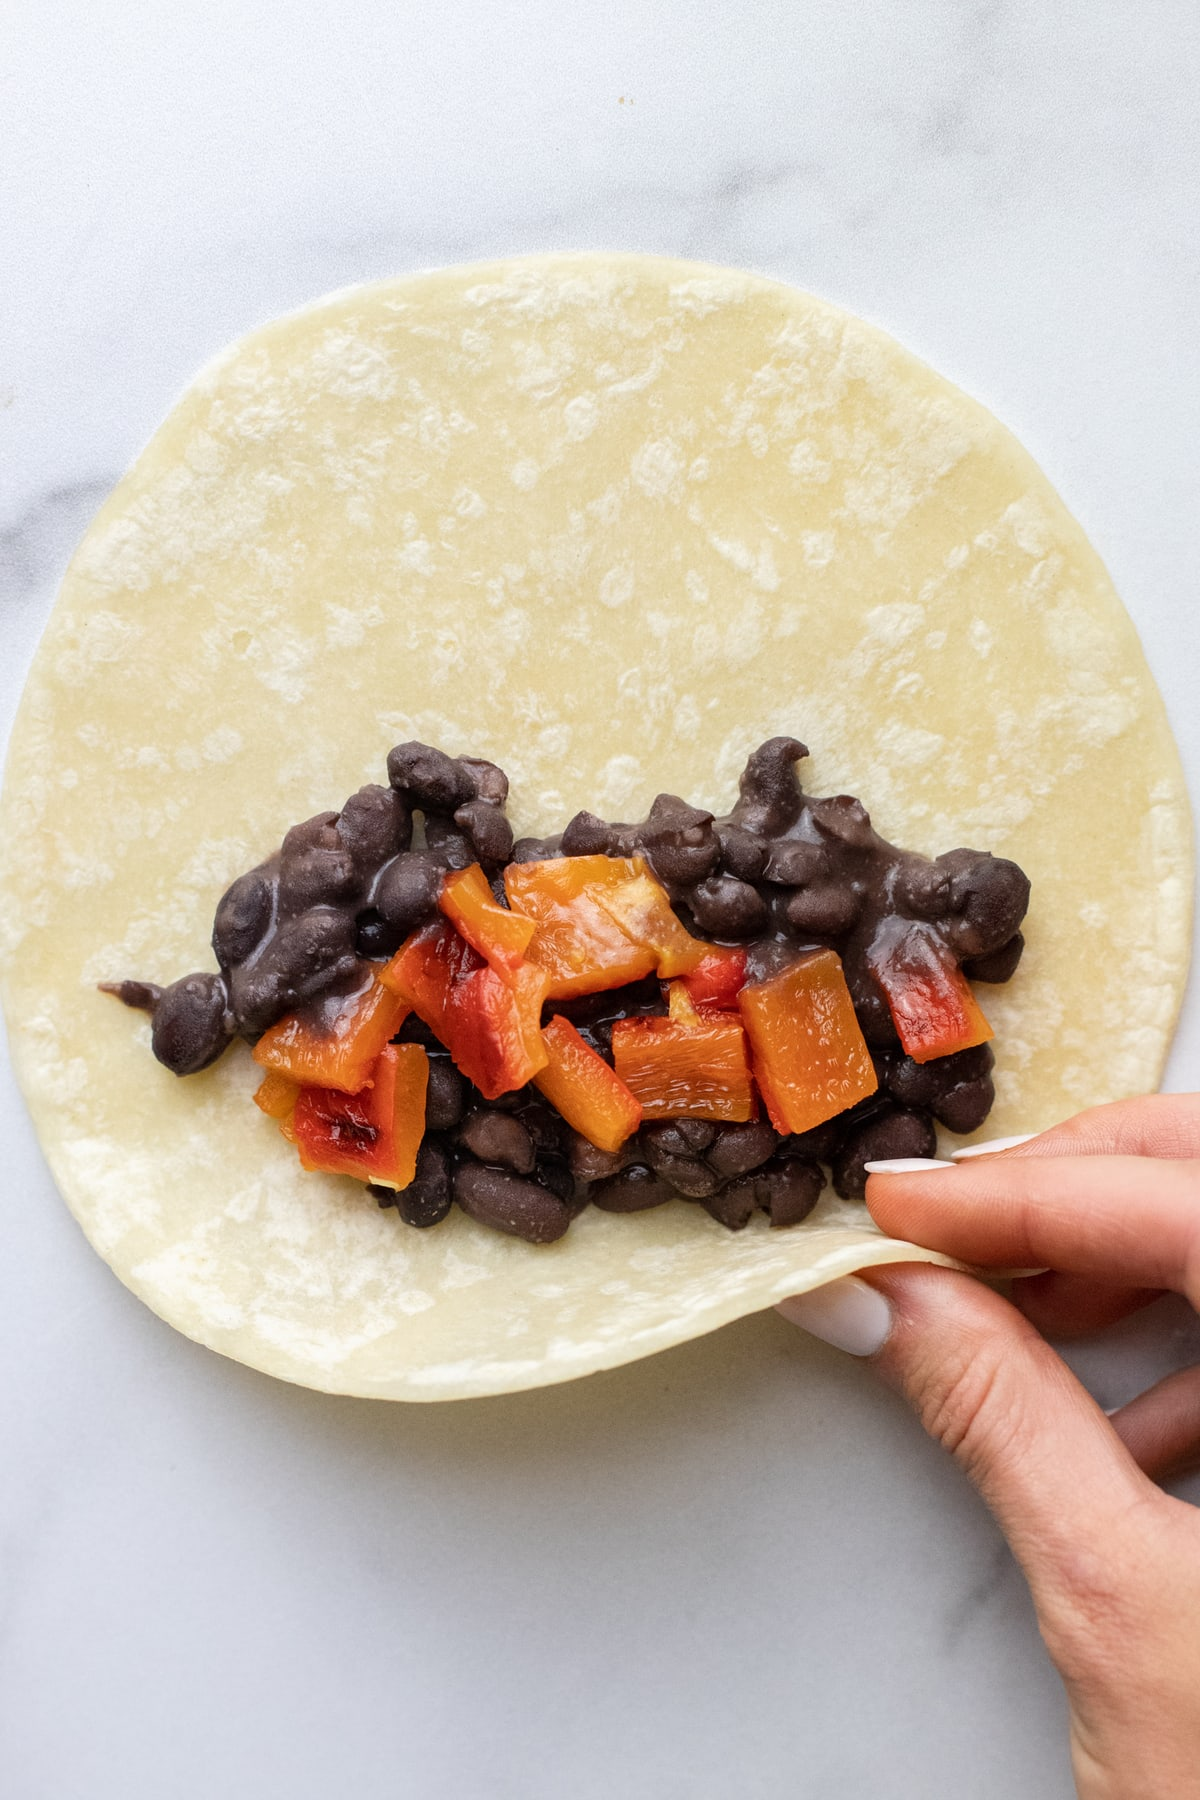 A hand wrapping a tortilla with black beans in it.